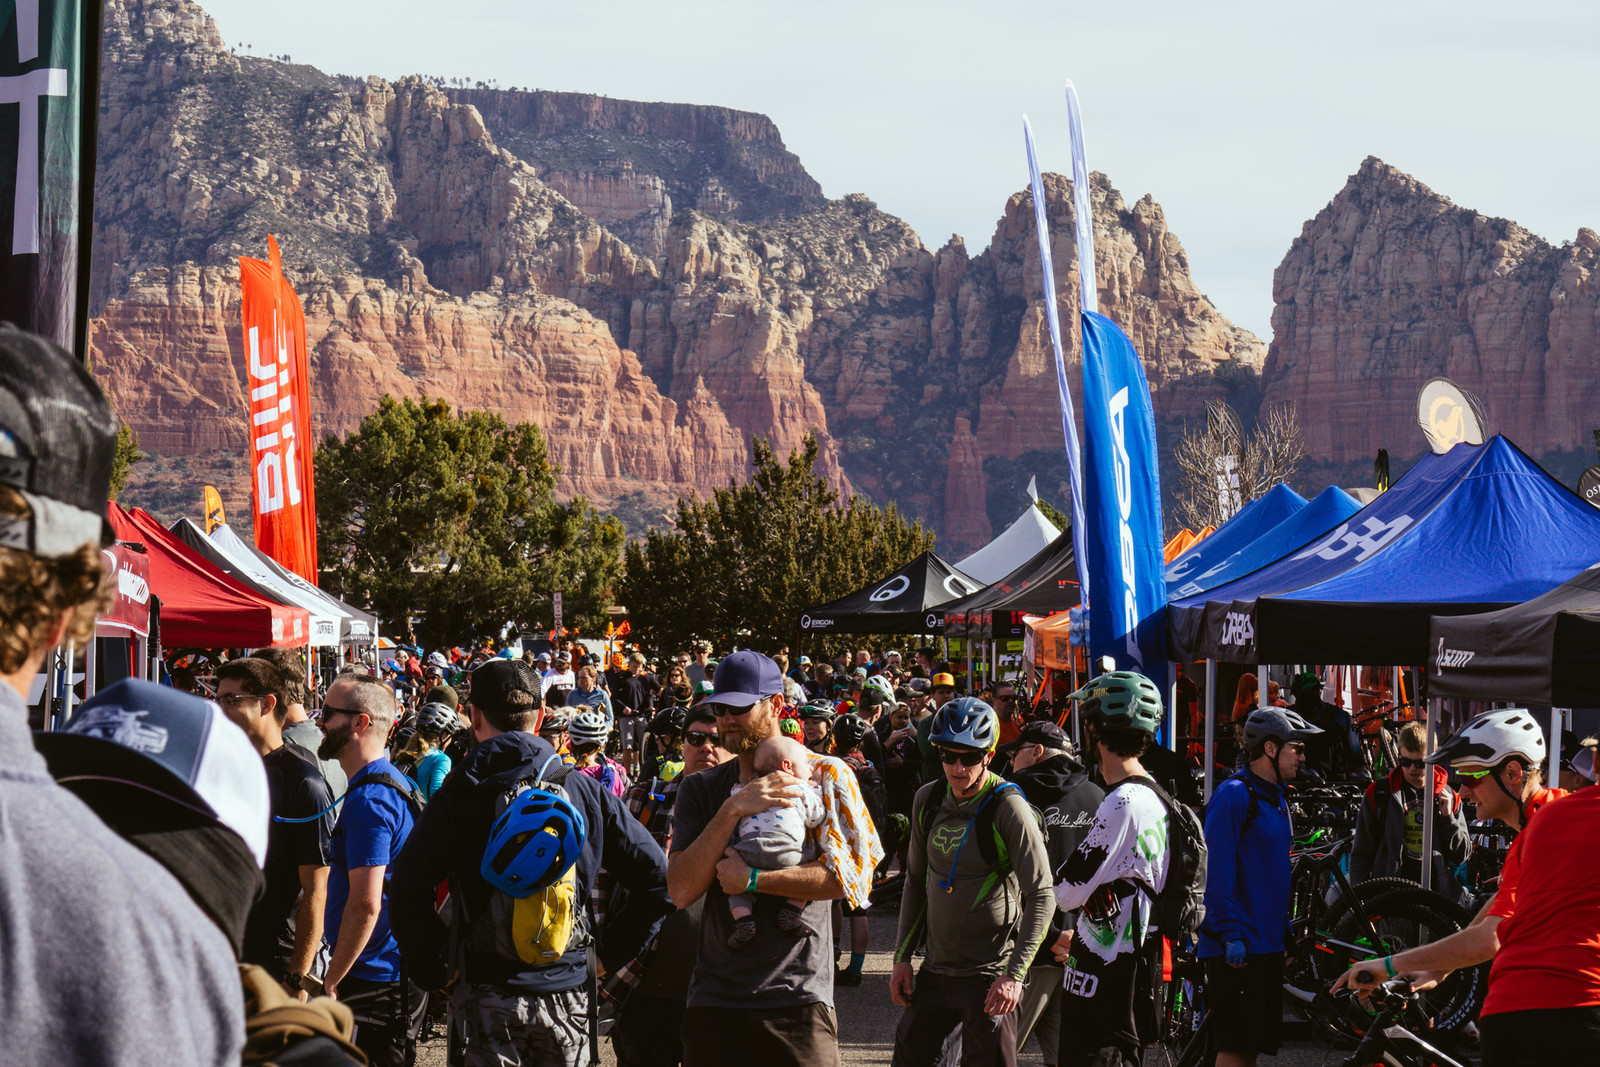 Packed House at the Sedona MTB Festival - PIT BITS - Fresh Products from the Sedona Mountain Bike Festival - Mountain Biking Pictures - Vital MTB